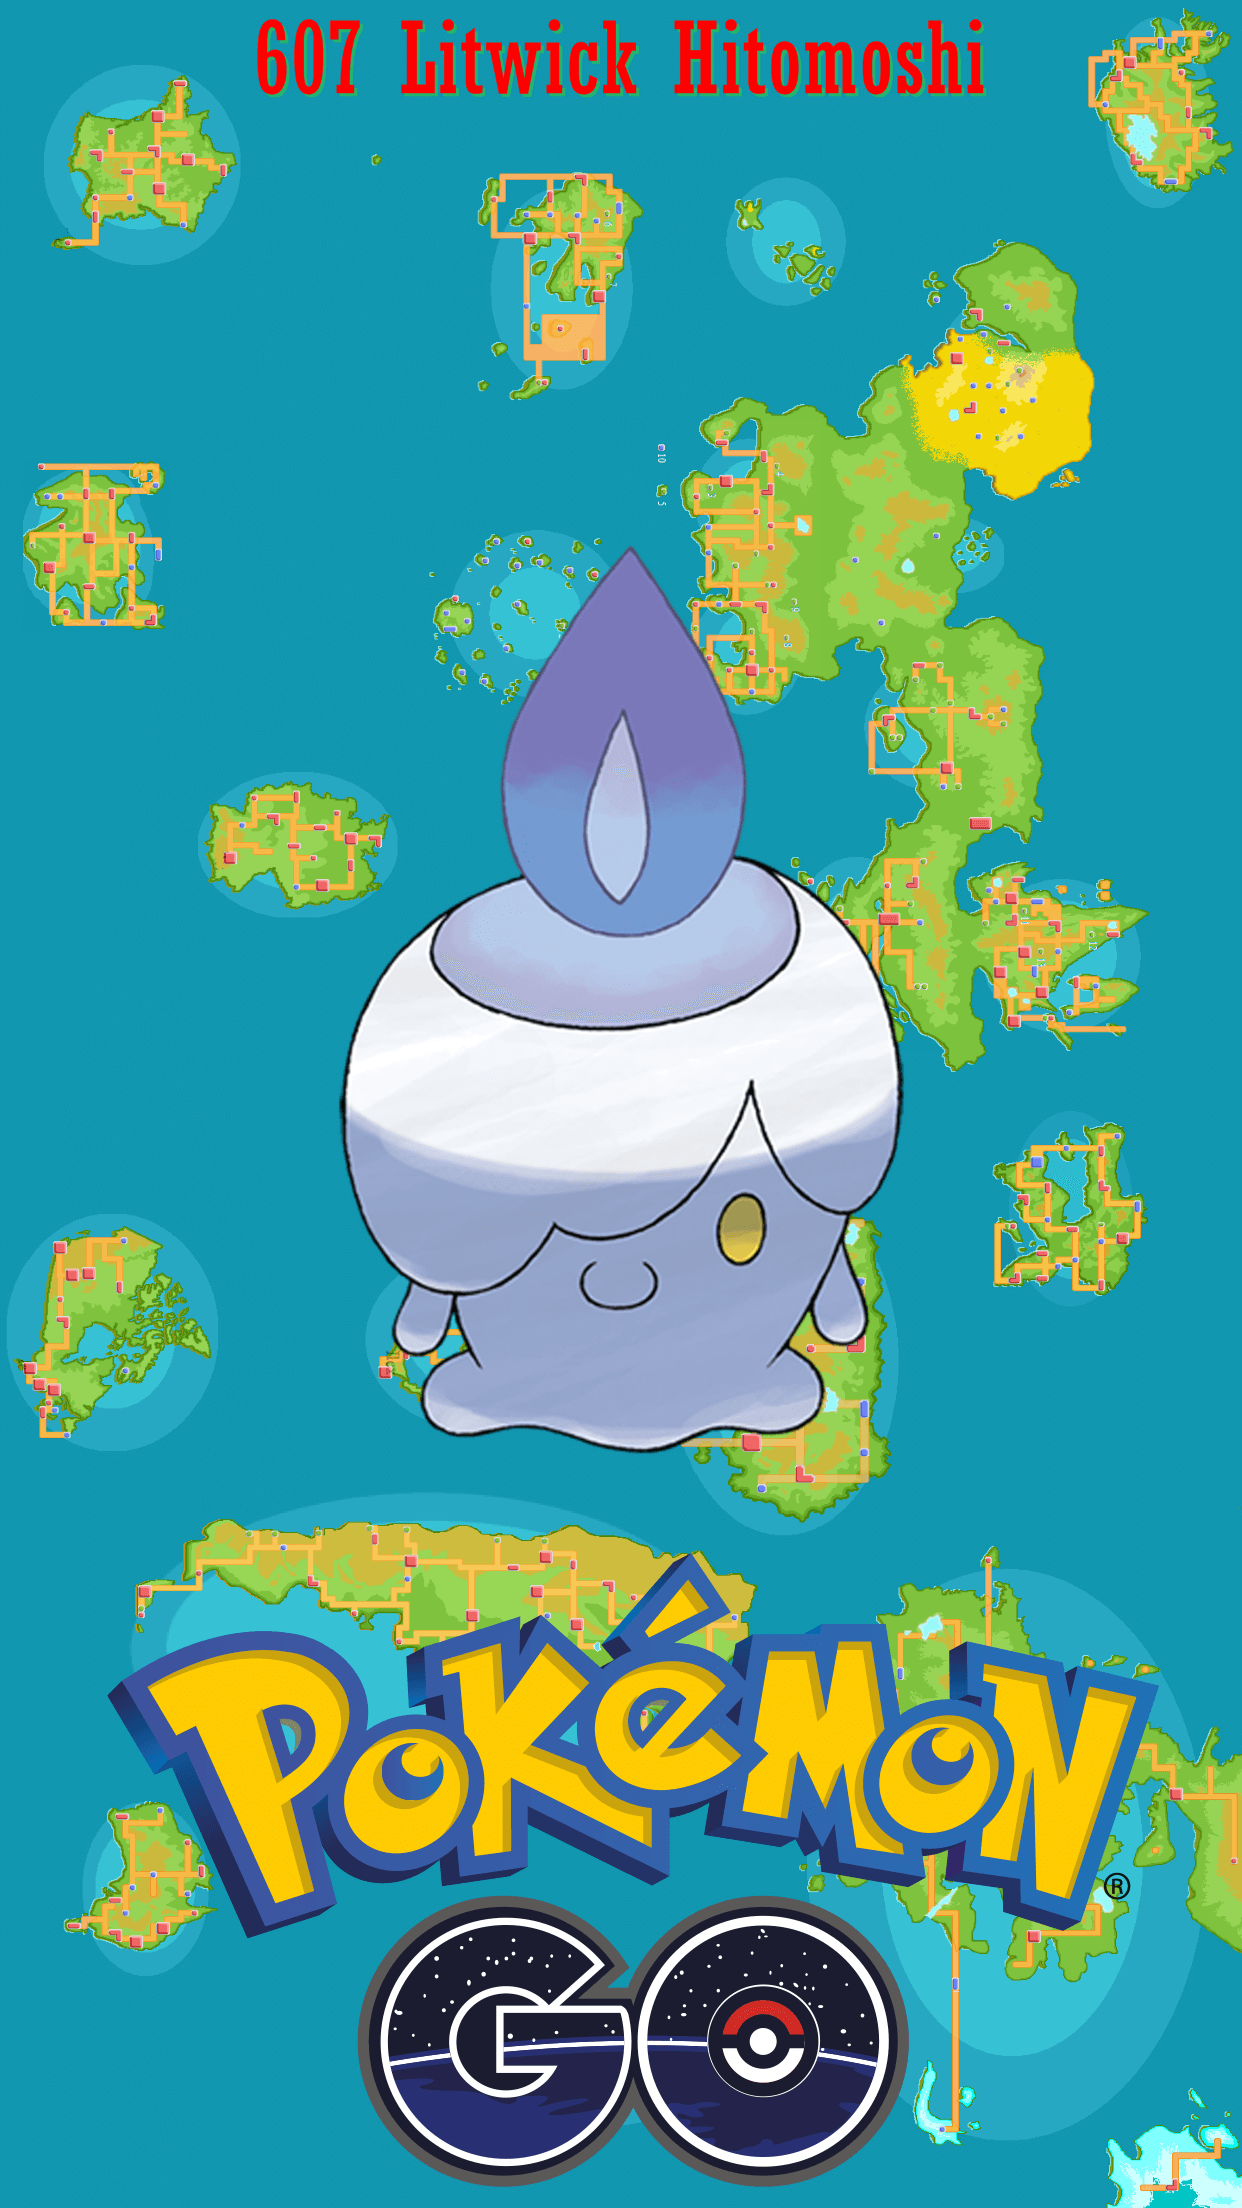 607 Street Map Litwick Hitomoshi | Wallpaper